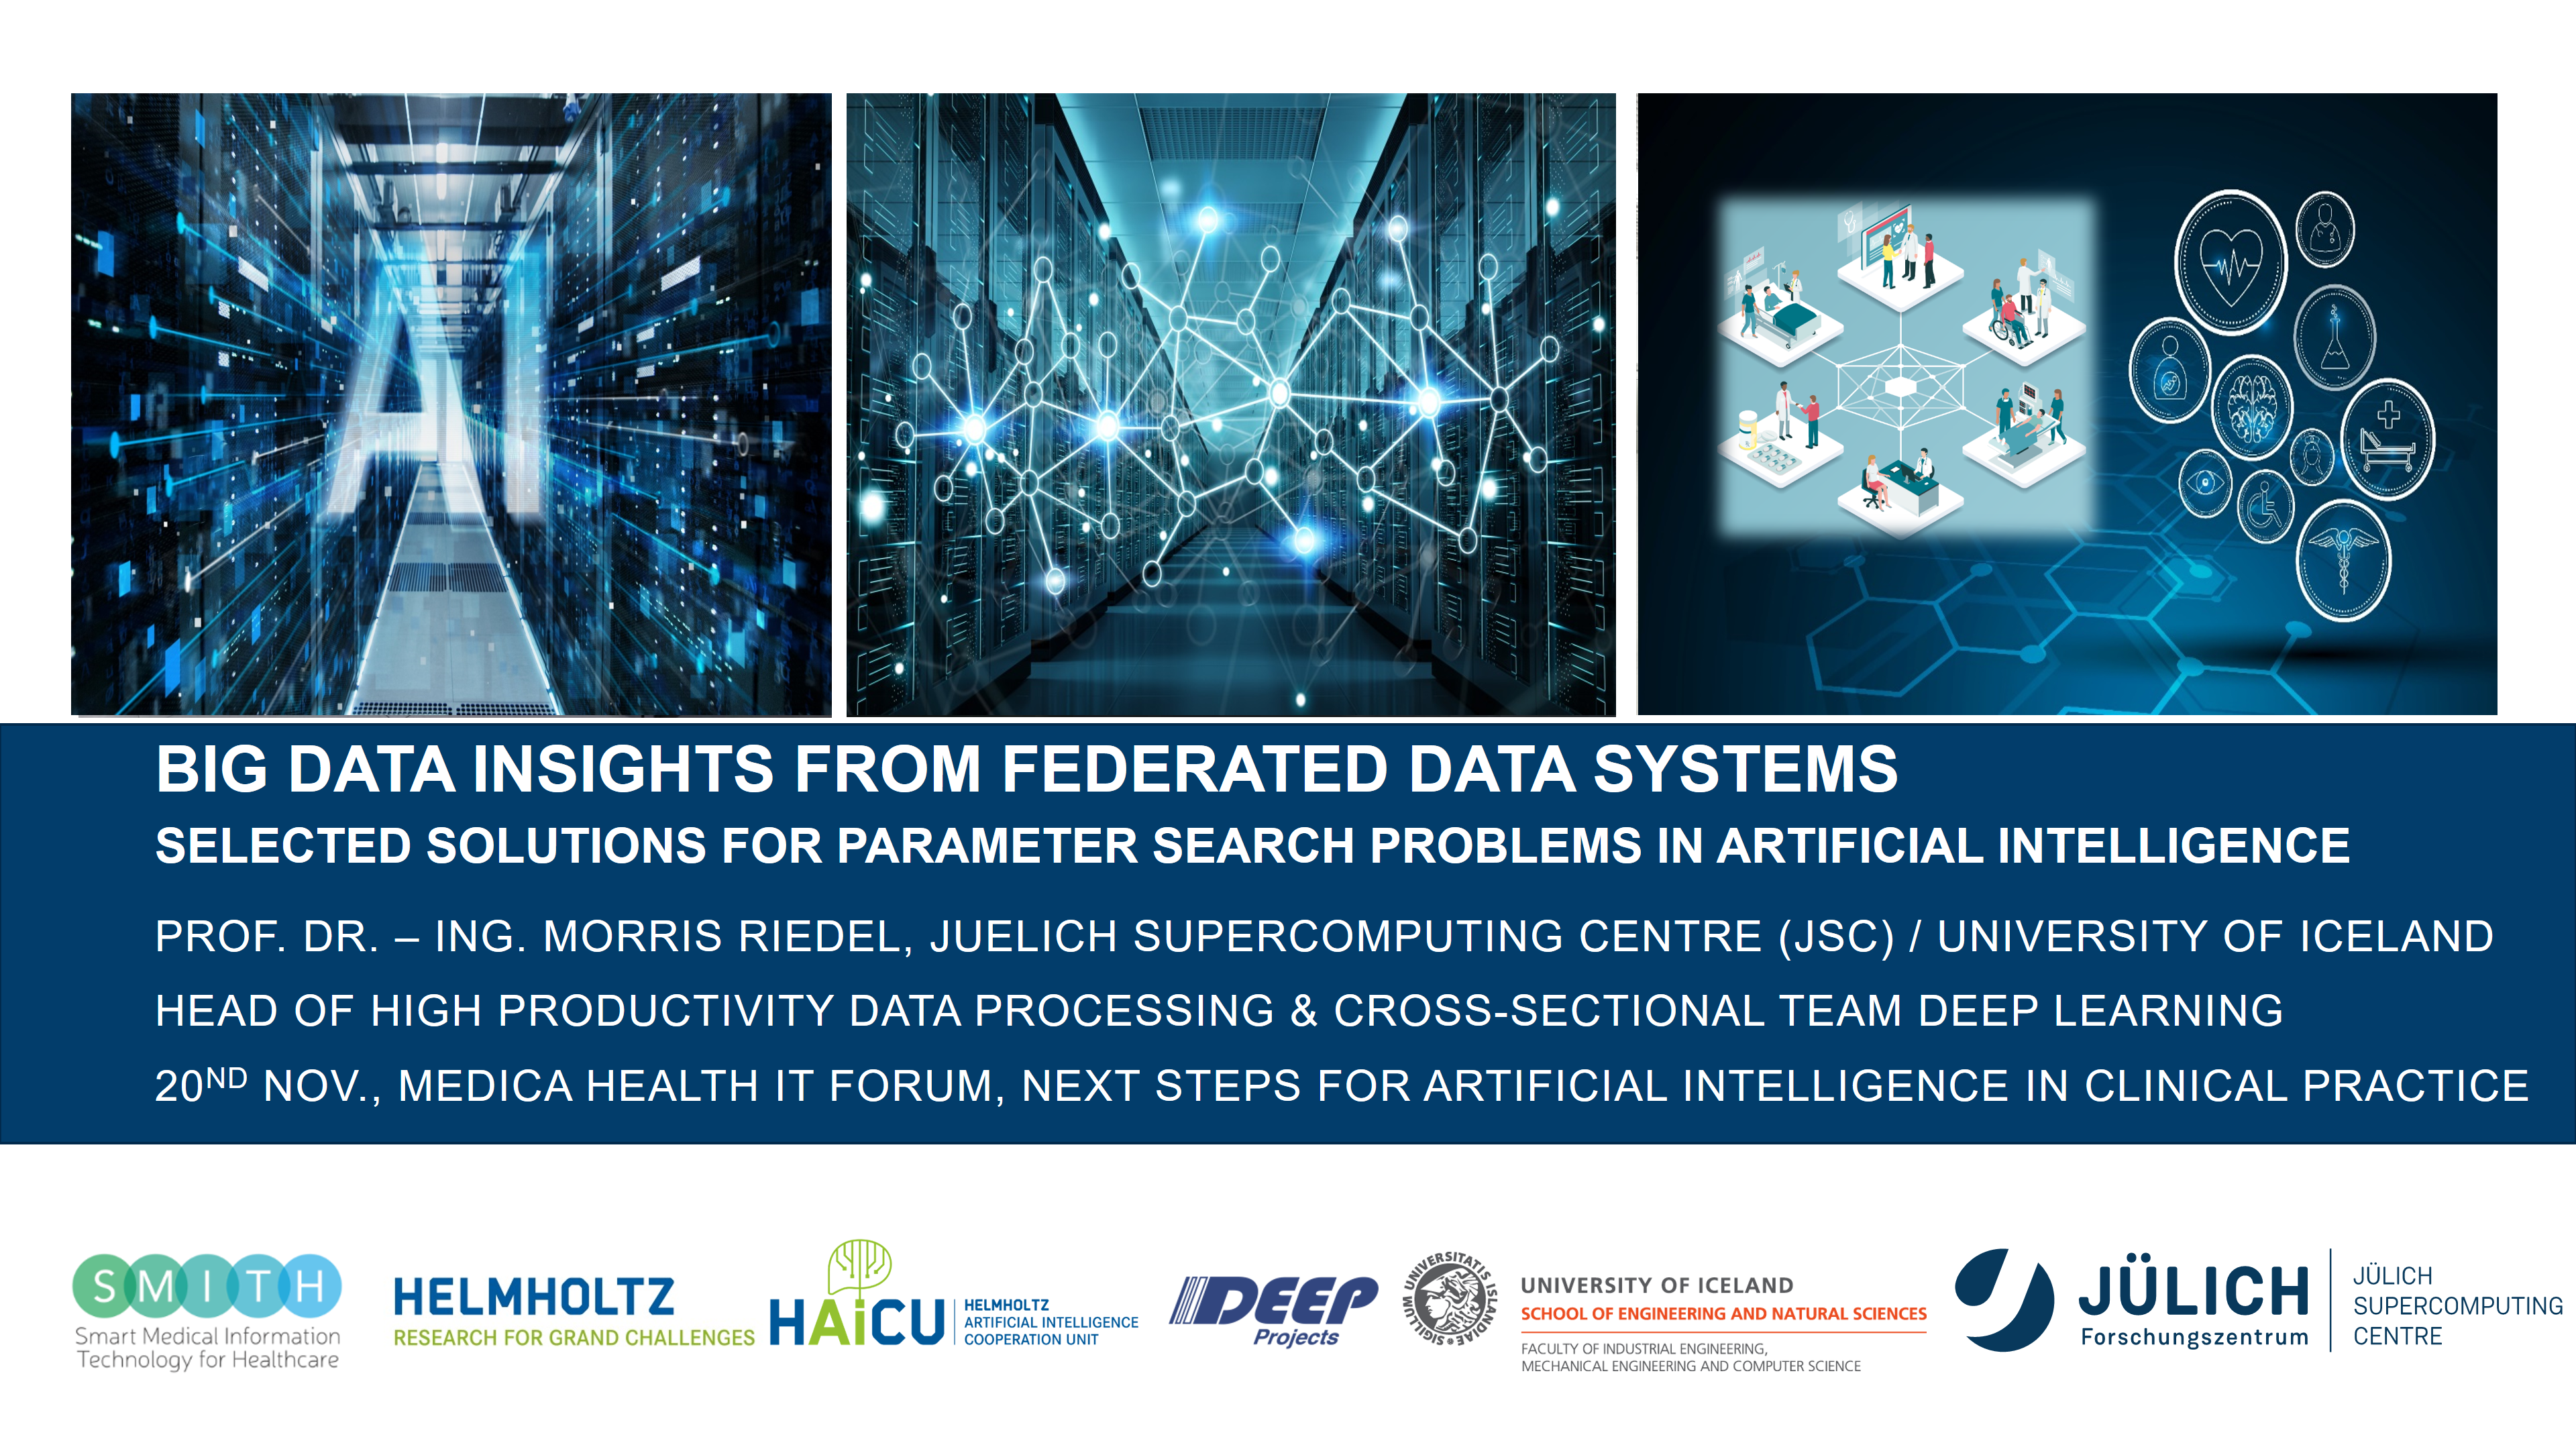 MEDICA Health IT Forum Big Data Insights From Federated Data Systems Morris Riedel